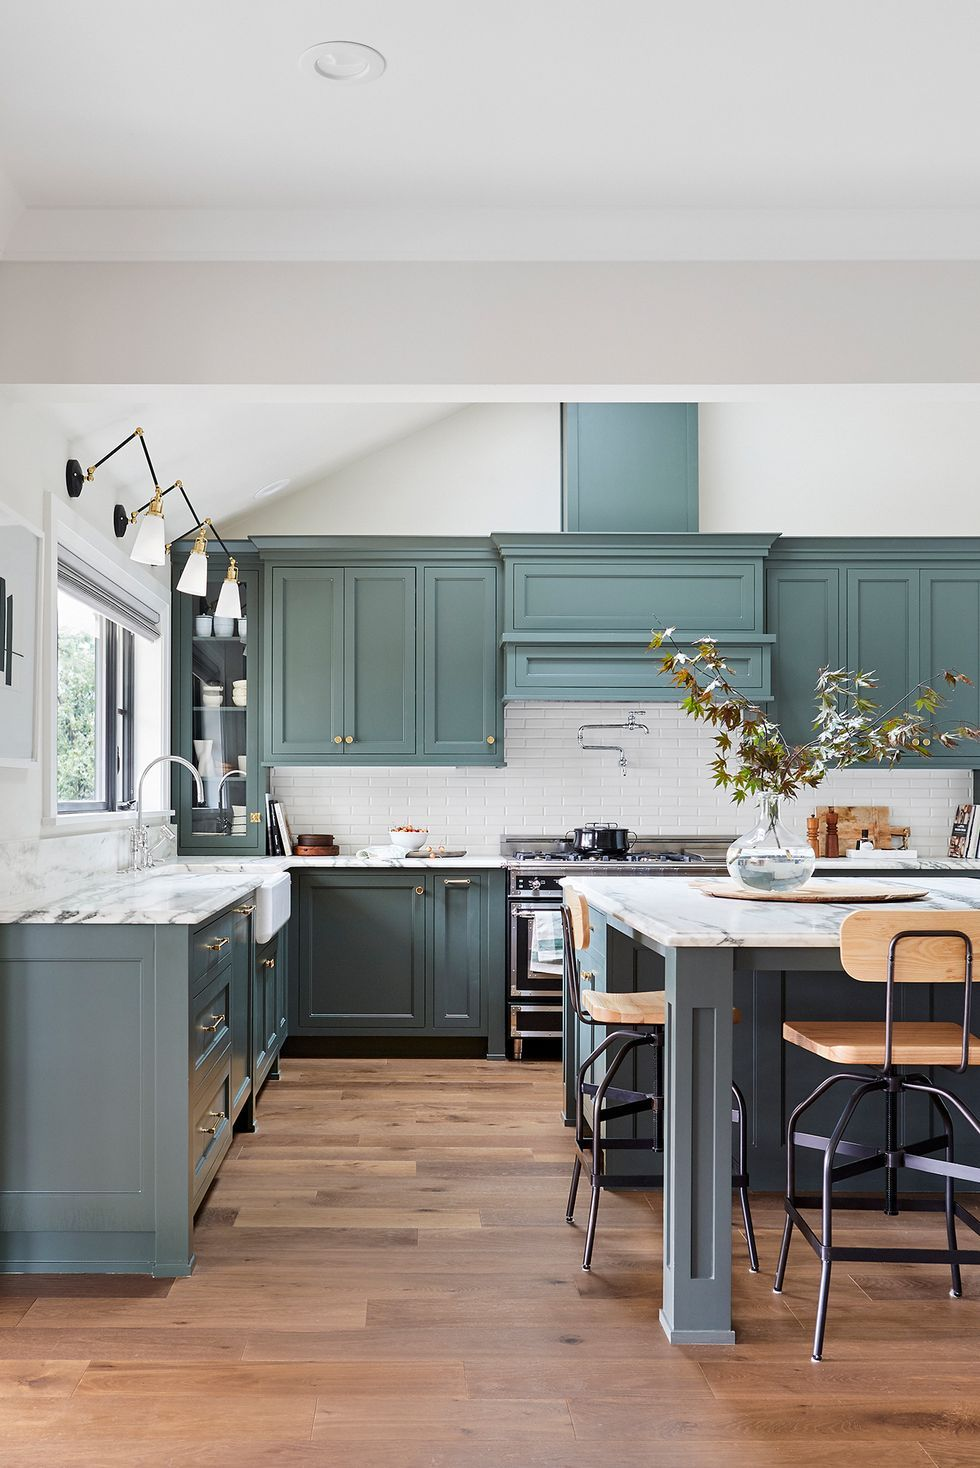 The Kitchen Cabinet Paint Colors Designers Will Use In 2020 In 2020 Kitchen Color Trends Green Kitchen Cabinets Kitchen Cabinets Decor